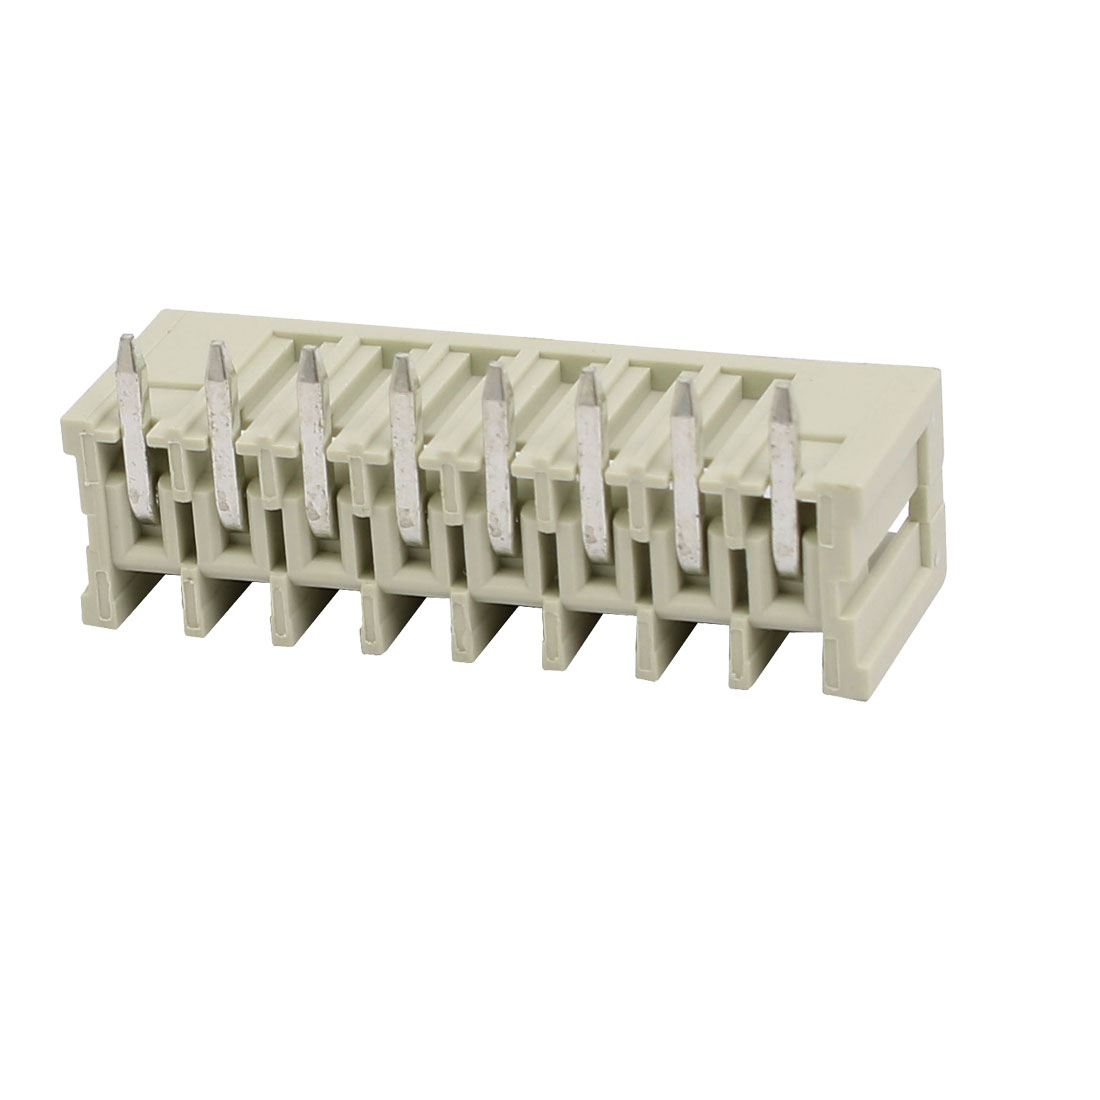 8 Pole PCB 3.5mm Pitch Right Angle Solder Pin Box Header MCS Connector